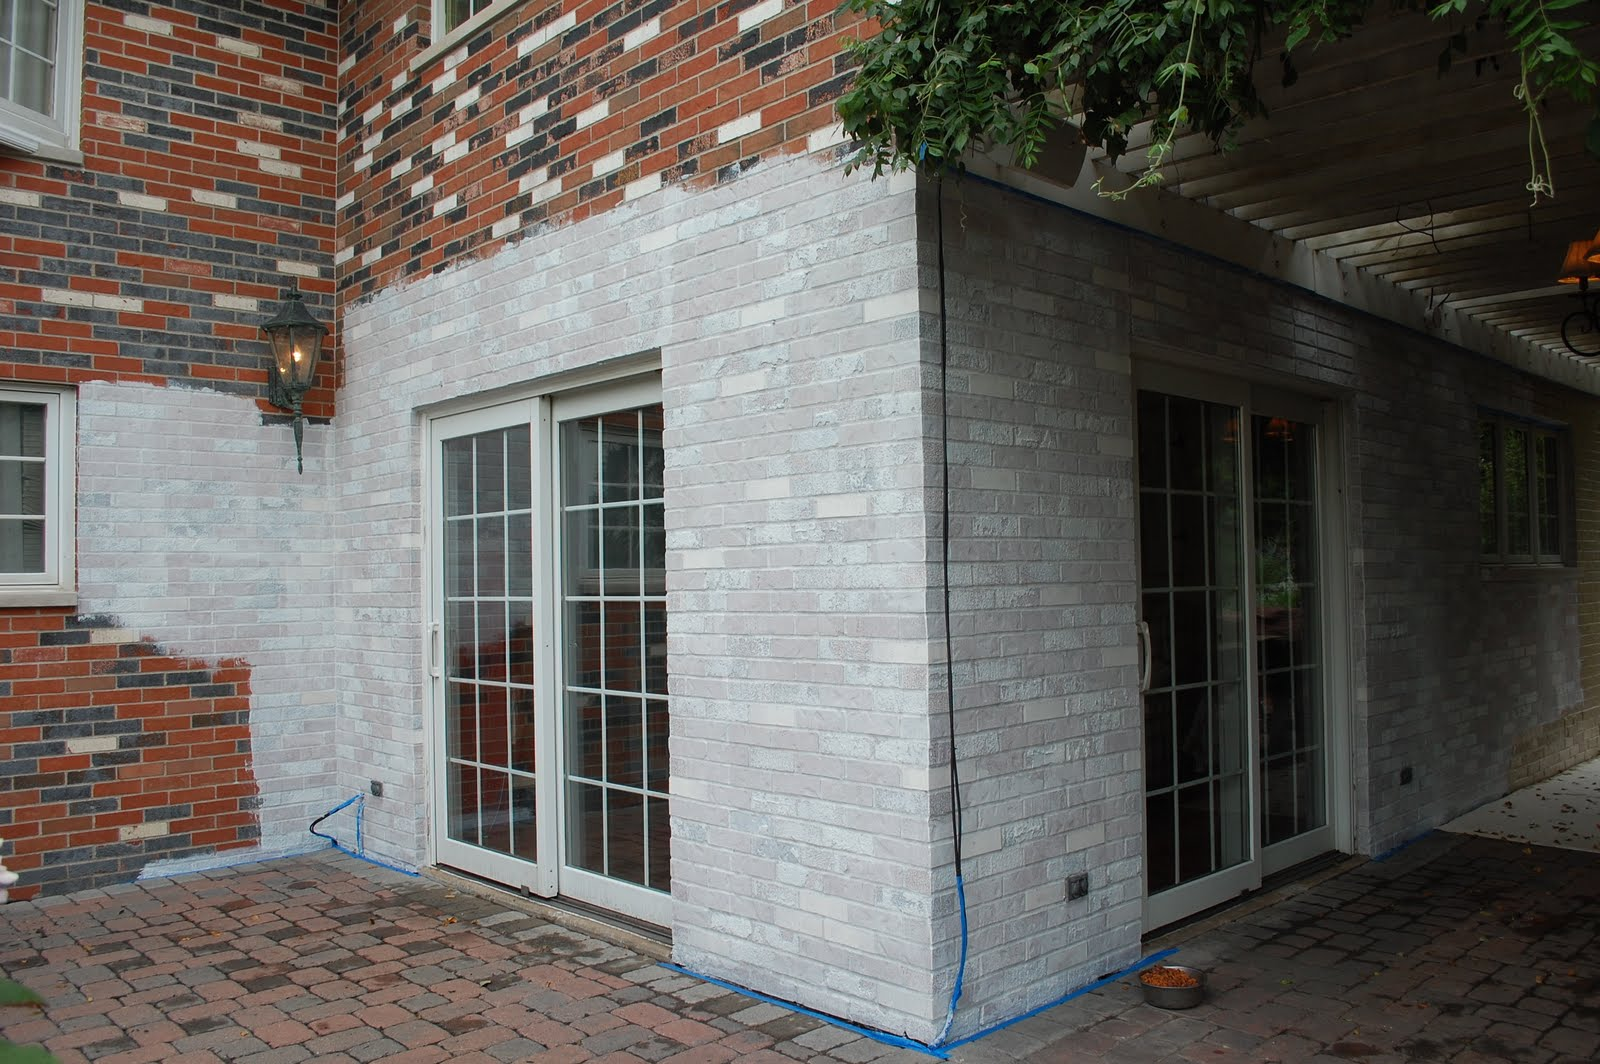 Exterior Makeover: Painting The Brick-Day 5